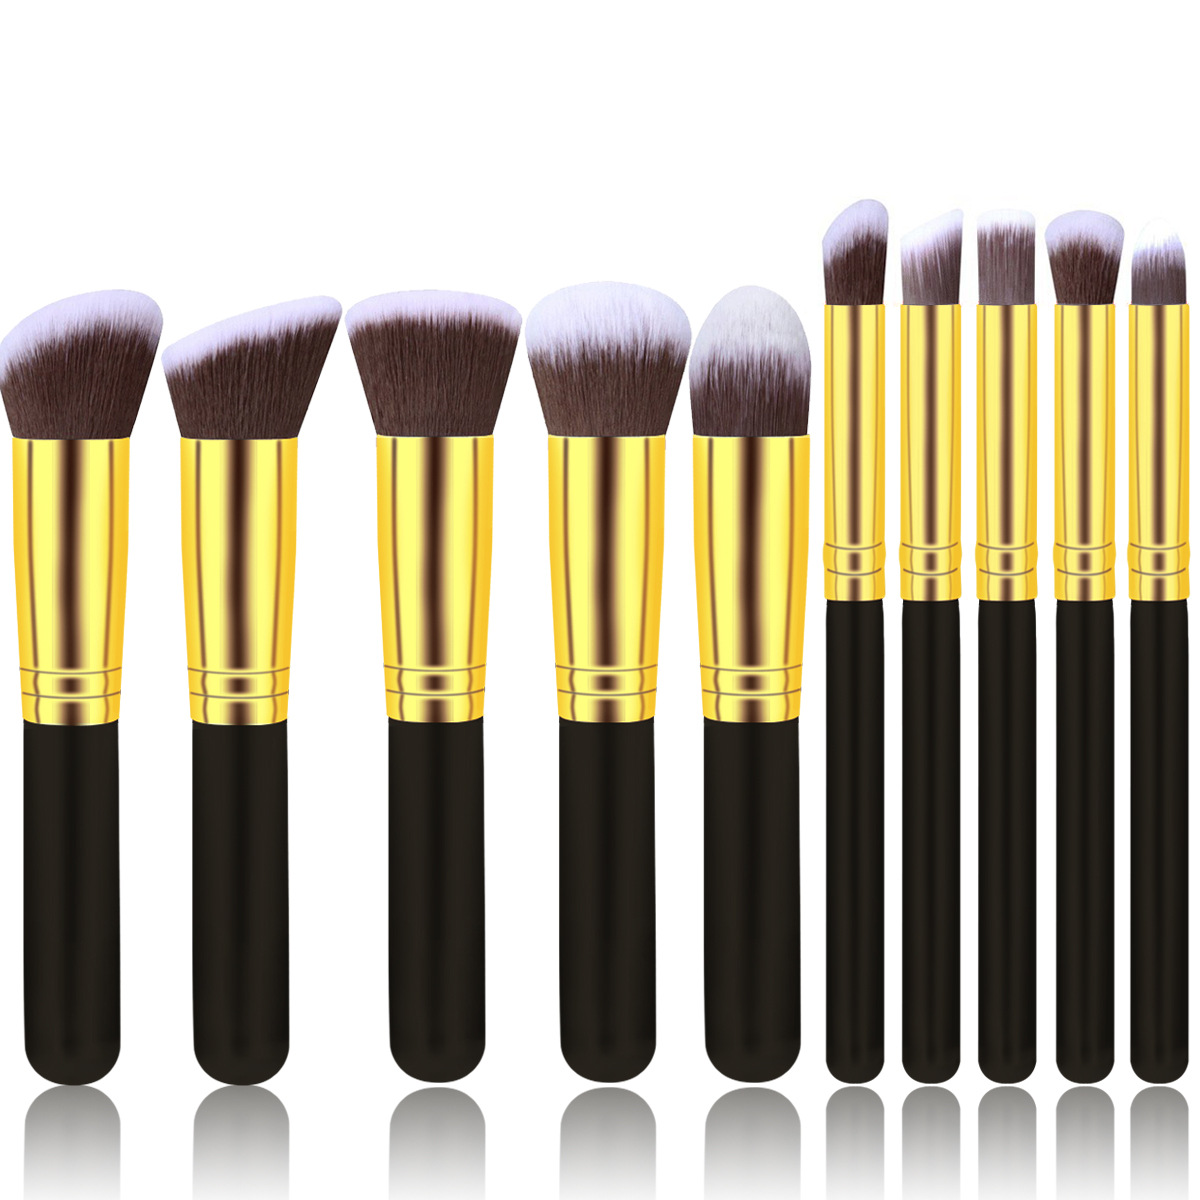 Image 5 - 2019 New Arrive 10 Pcs Makeup Brush Set Soft Synthetic Hair Cosmetics Foundation Powder Blending Blush Lady Beauty Makeup Tools-in Eye Shadow Applicator from Beauty & Health